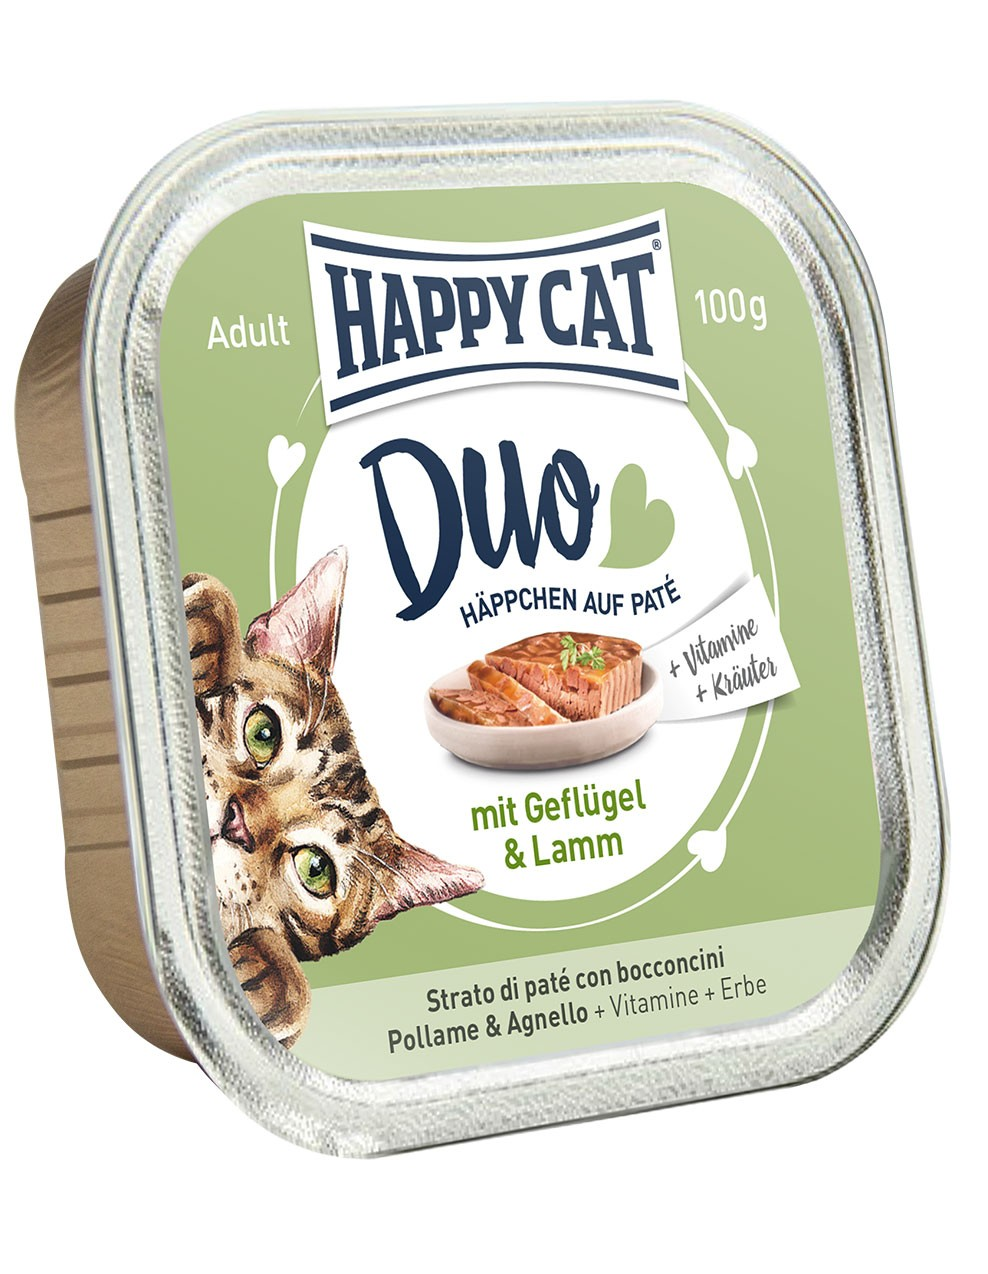 Duo Menu - Geflügel & Lamm (12x100g) - Happycat